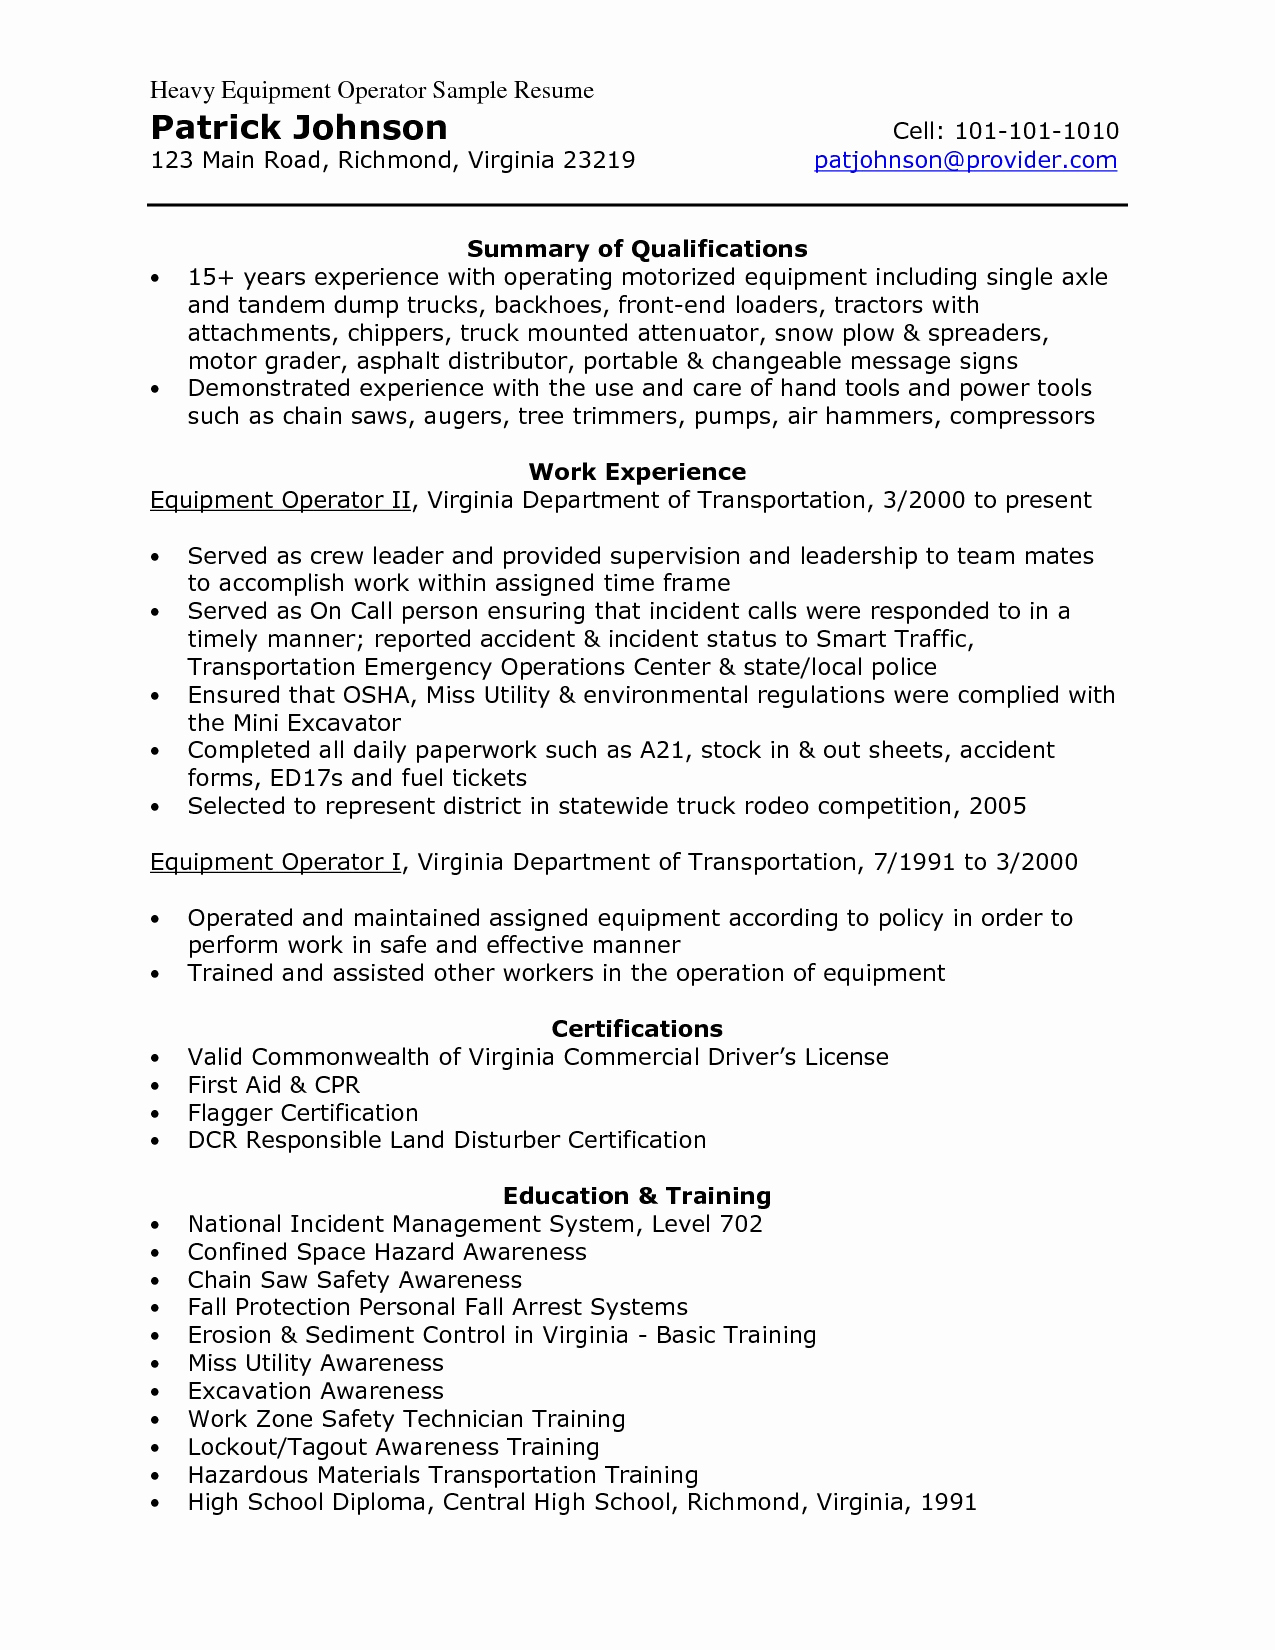 Direct Care Staff Resume - Resume Templates for Maintenance Worker Direct Care Staff Duties